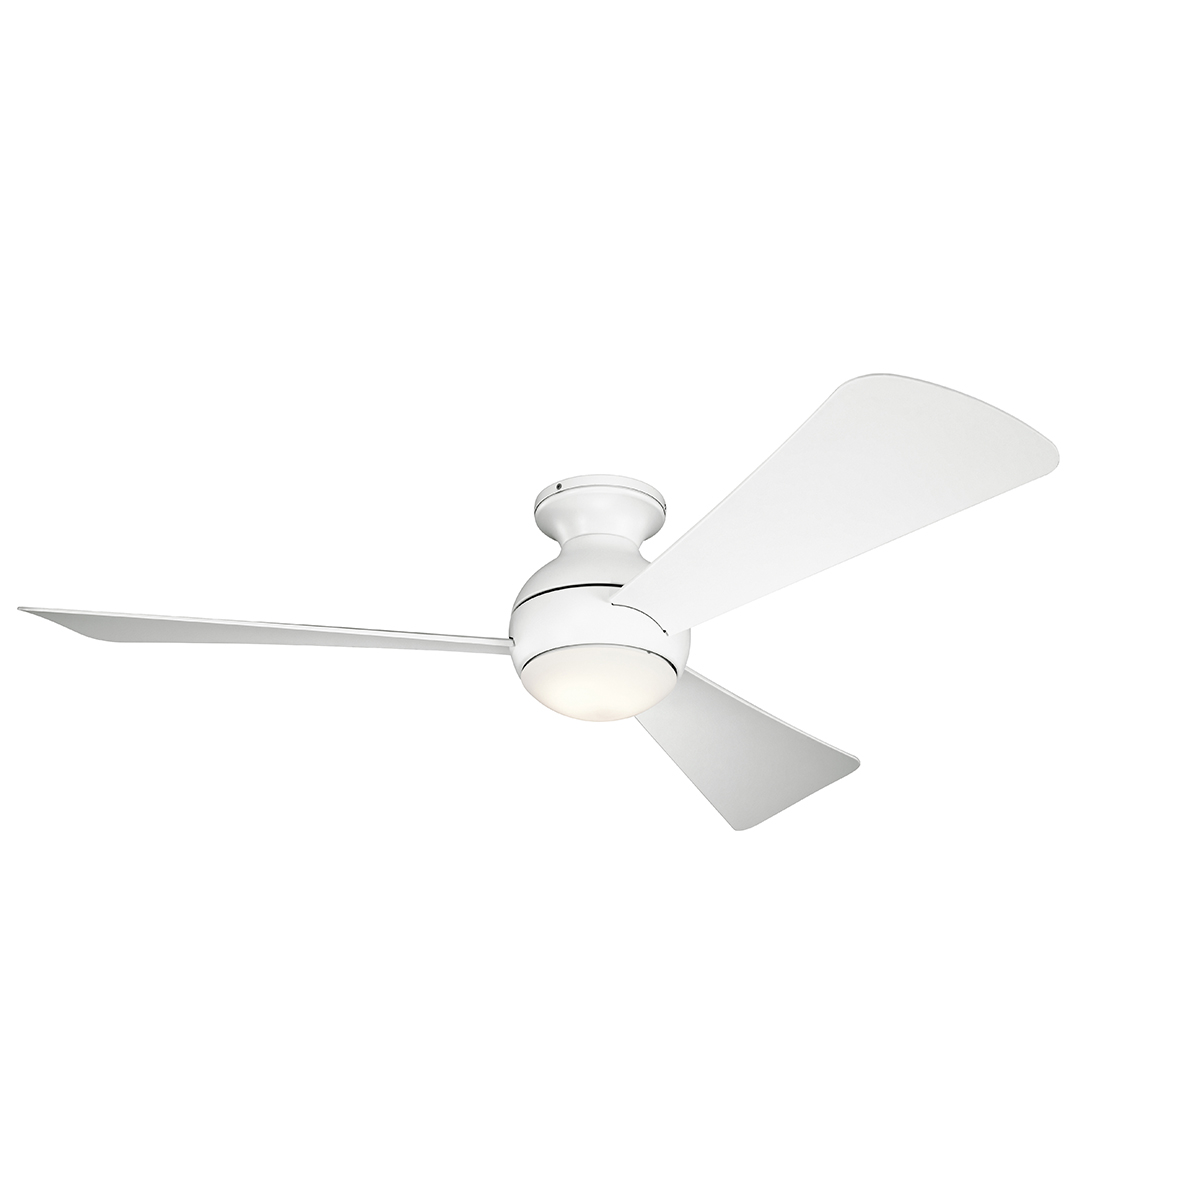 54 inchCeiling Fan from the Sola collection by Kichler 330152MWH